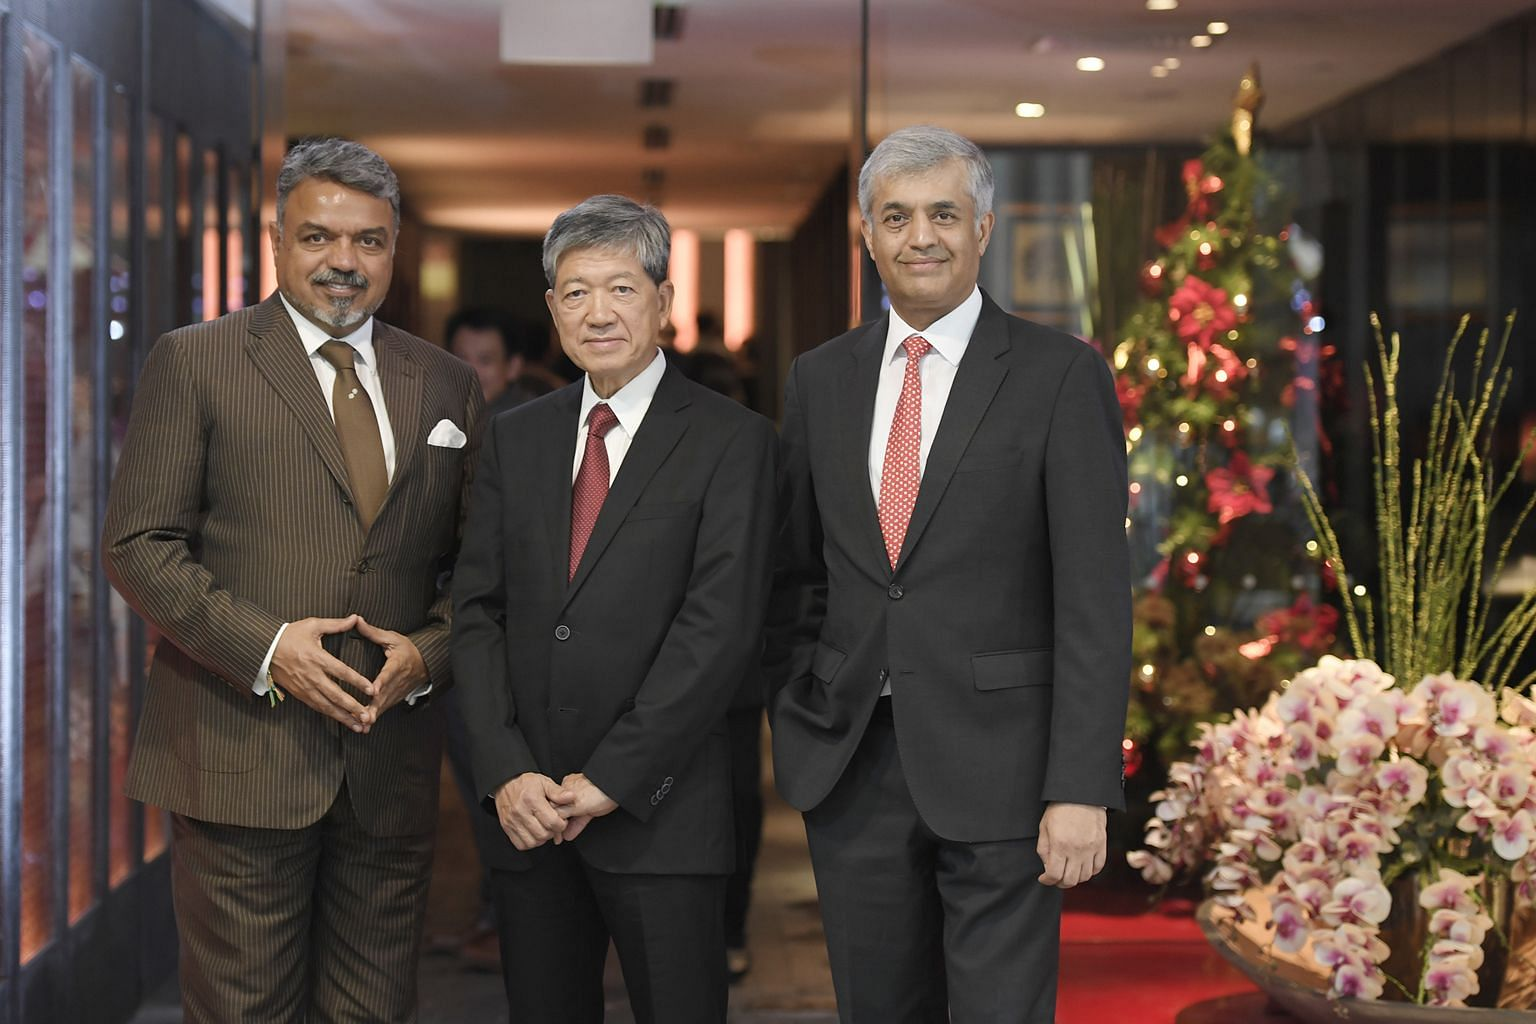 (From left) Mr Ravi Thakran, chairman and managing partner of L Catterton Asia, Mr Ip Yiu Tung, founder of Crystal Jade Culinary Concepts Holdings, and Mr Nainesh Jaisingh, global head of principal finance at Standard Chartered Bank, at Crystal Jade'